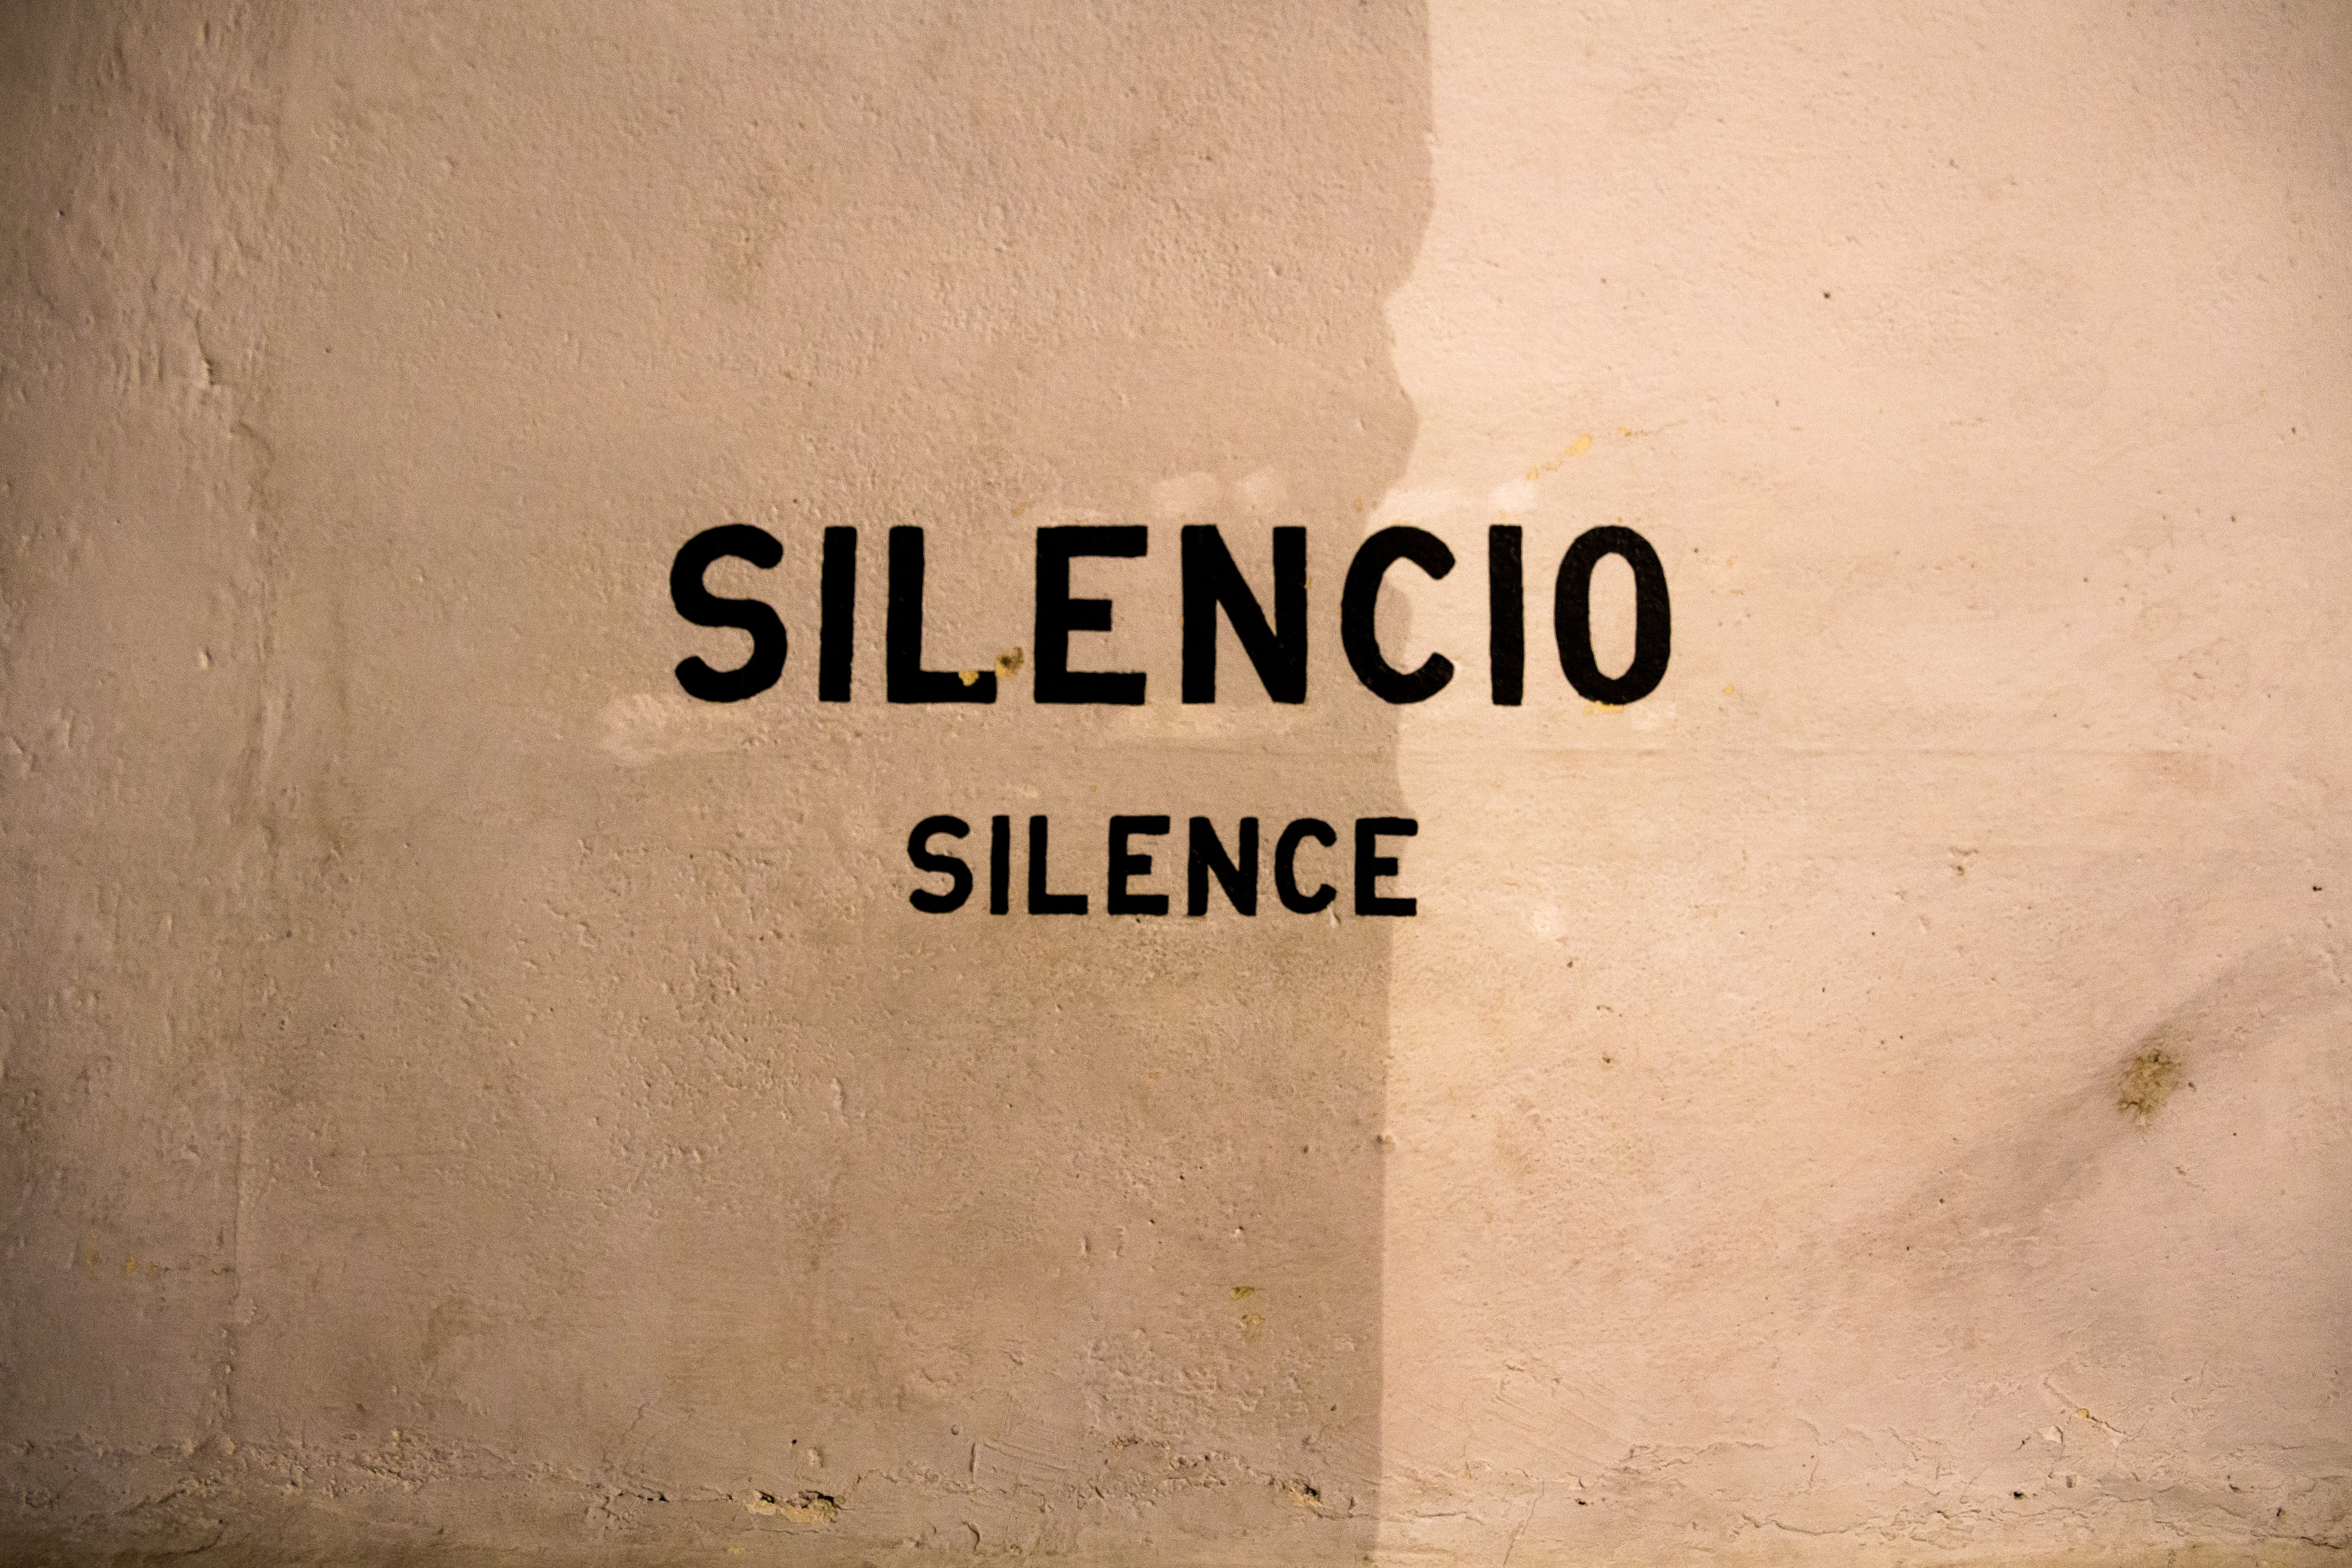 photo of a sign that says Silence - silencio